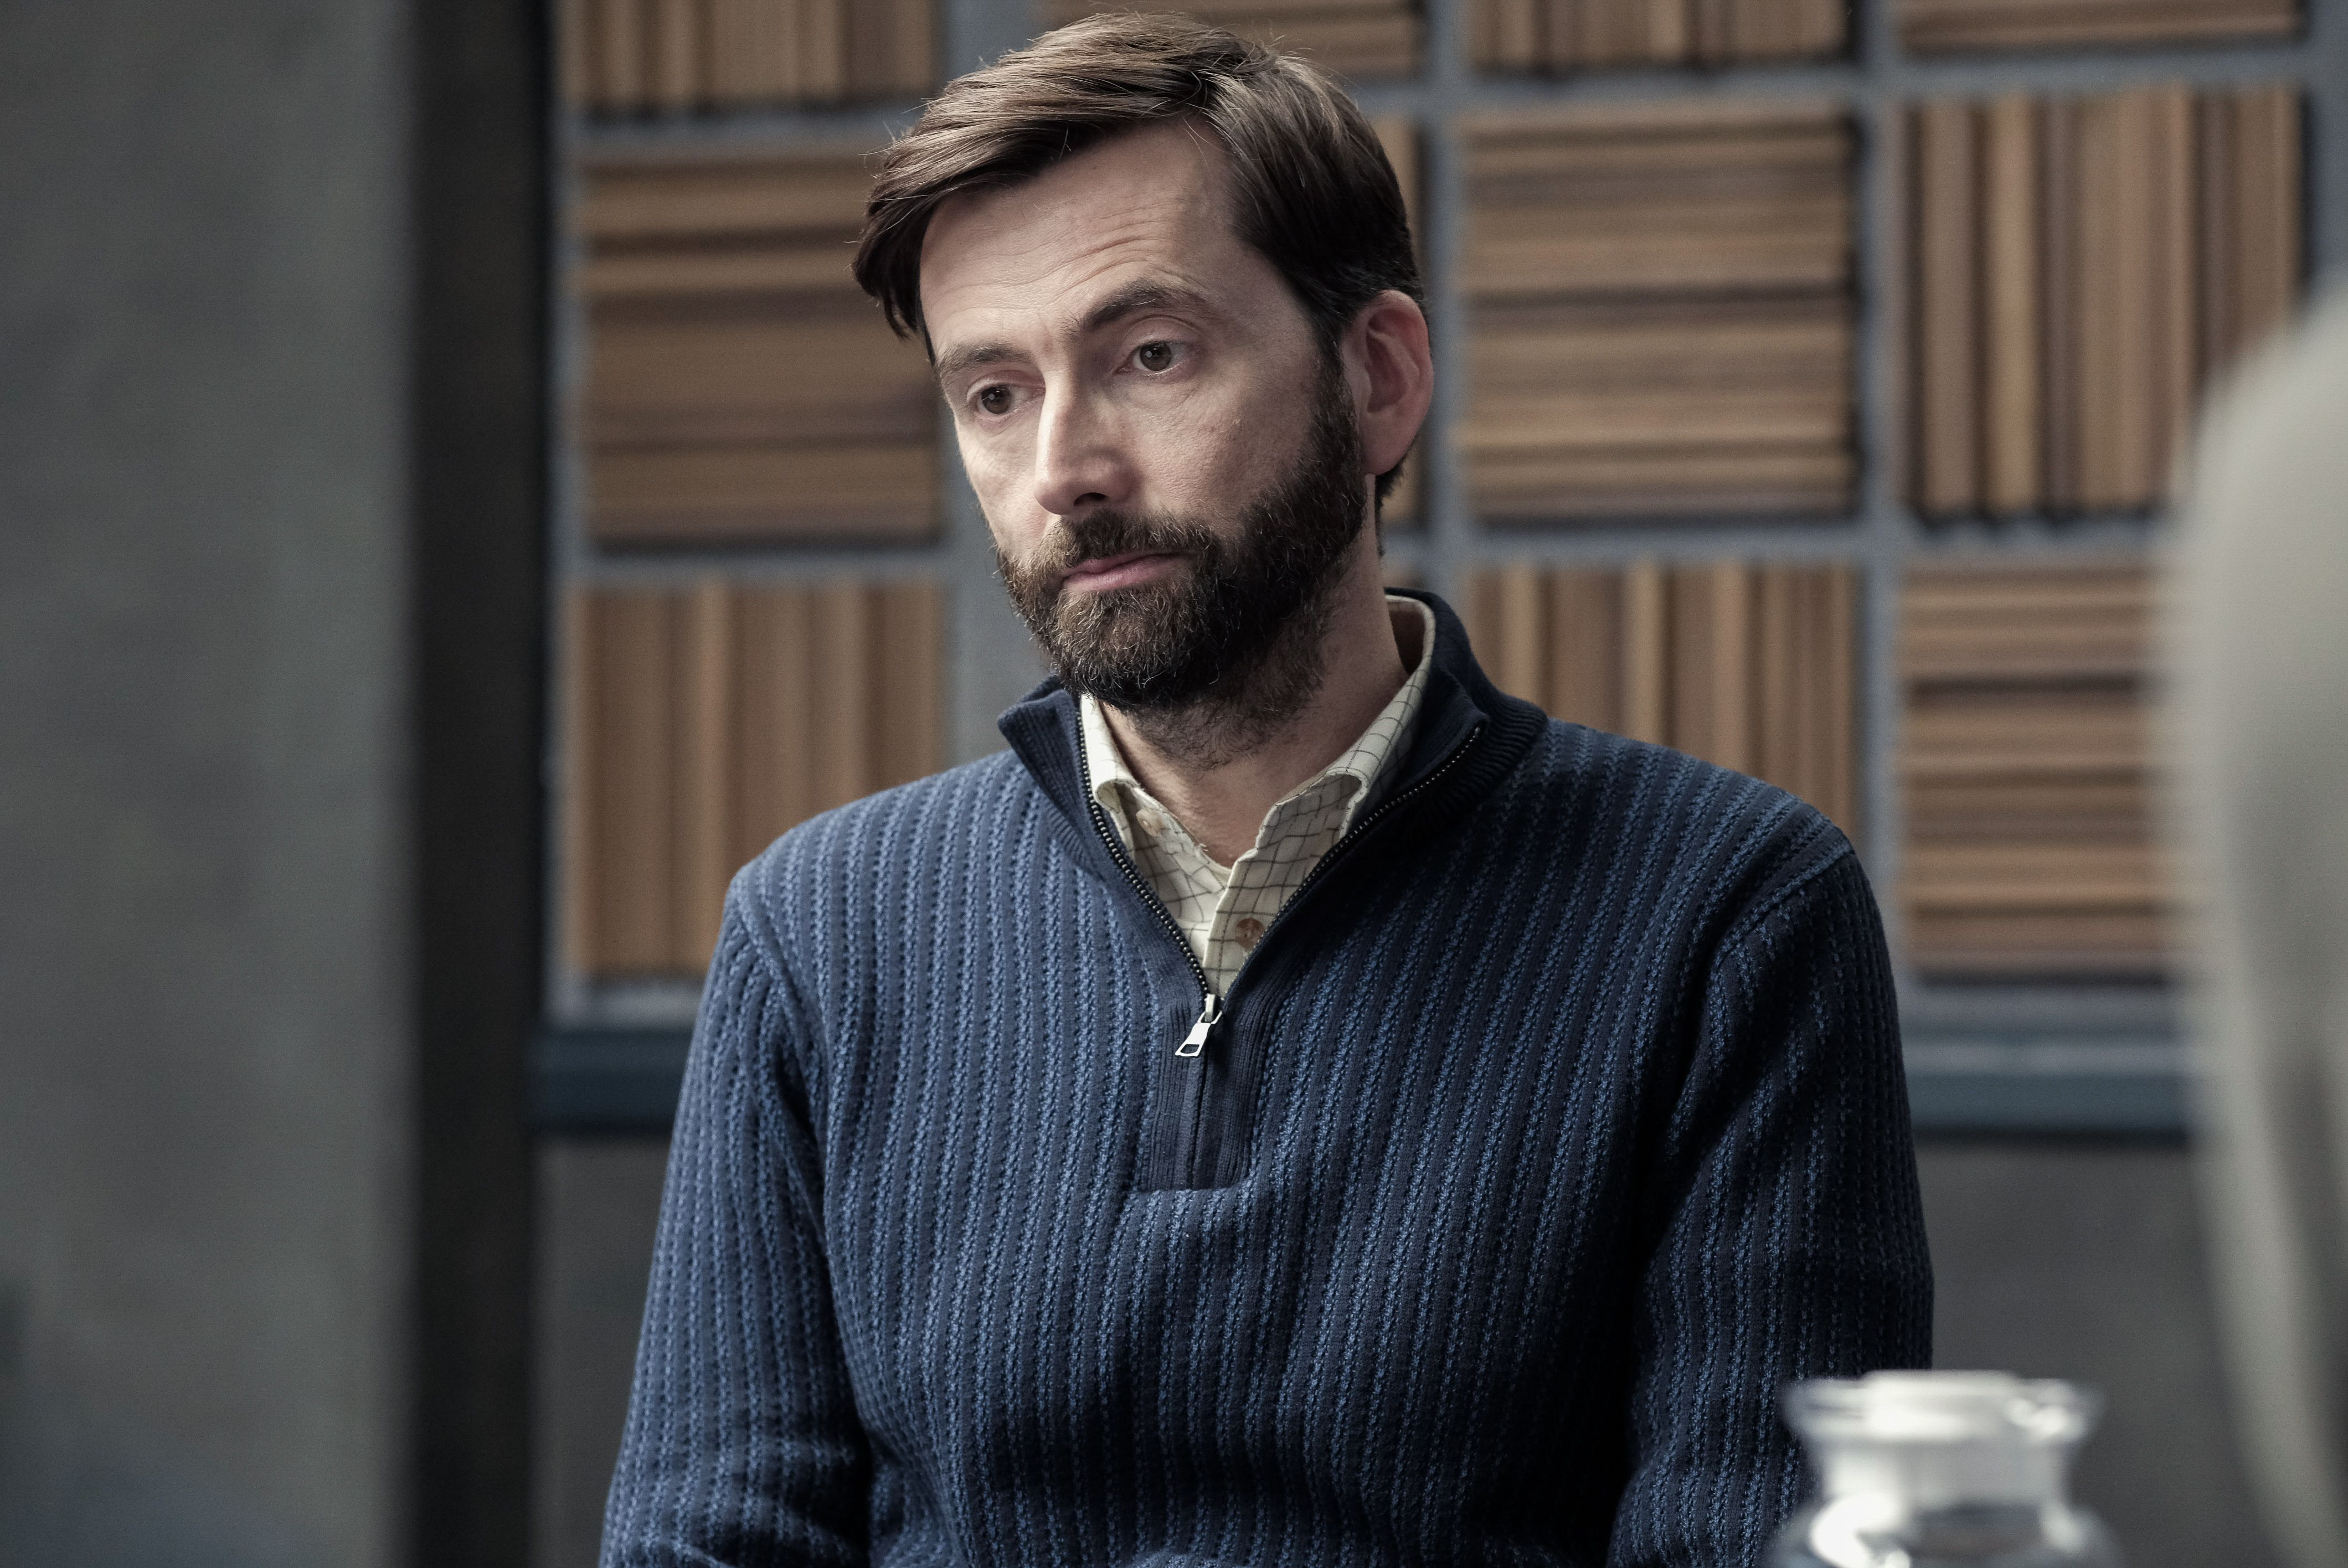 What you may have missed in Netflix's Criminal starring David Tennant